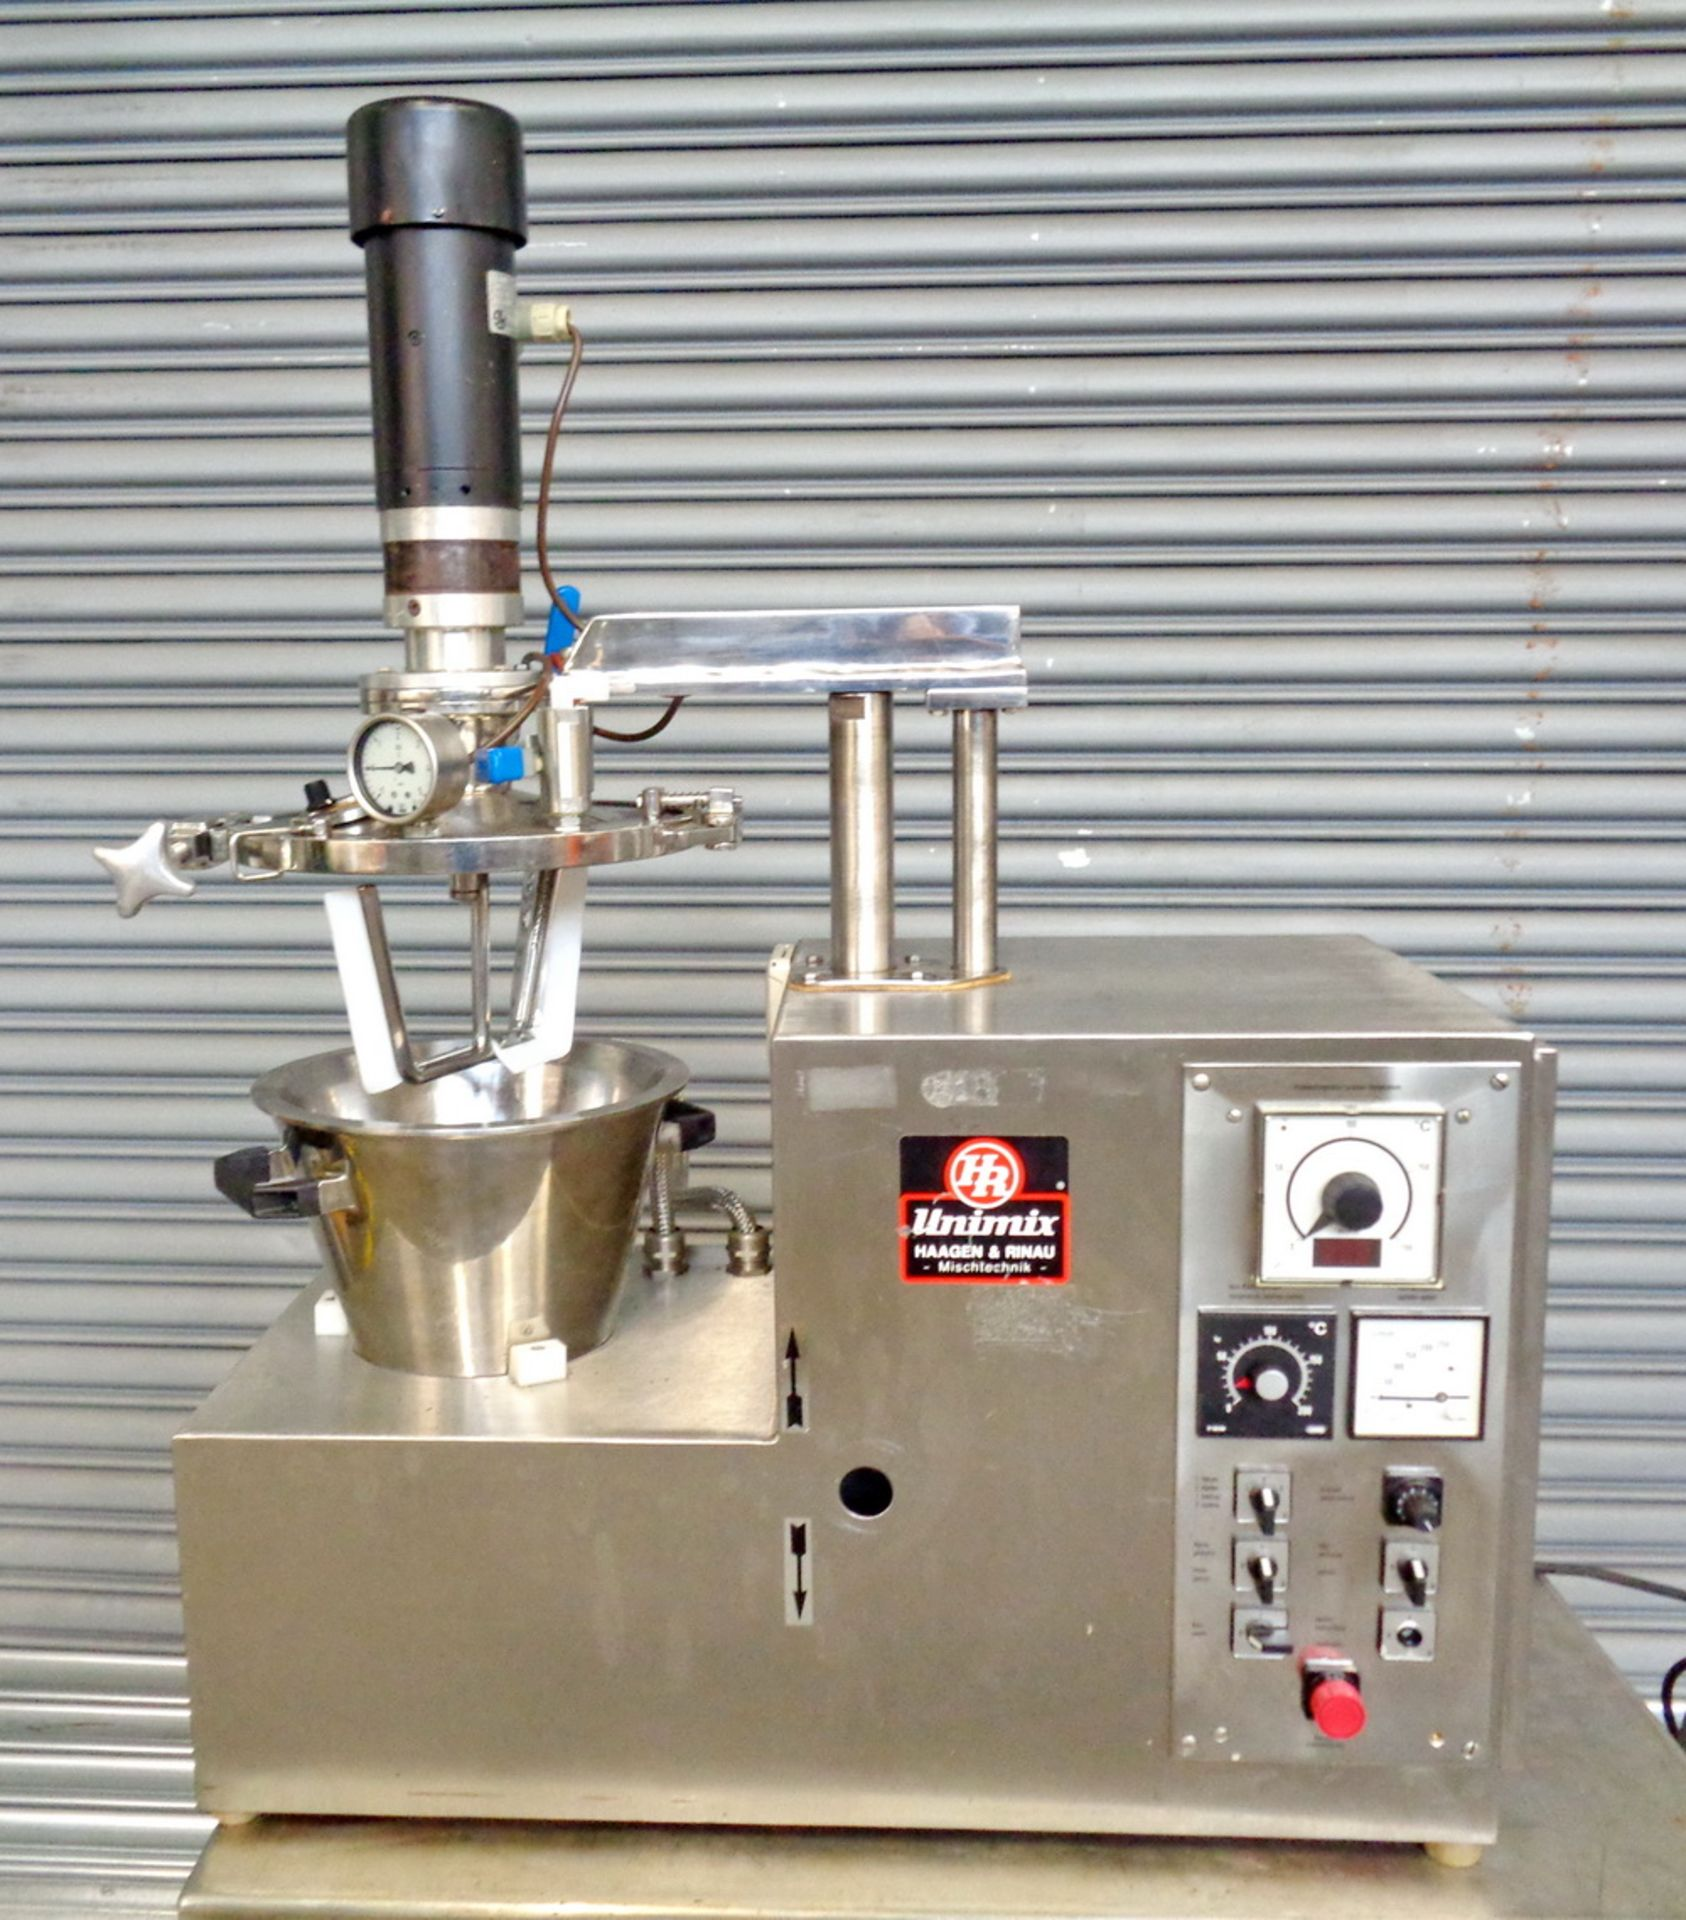 Lot 9 - Haagen Rinau (Ekato) 1 gallon SS Vacuum/Jacketed Lab Process Mixer, Model Unimix, S/N 866-3276